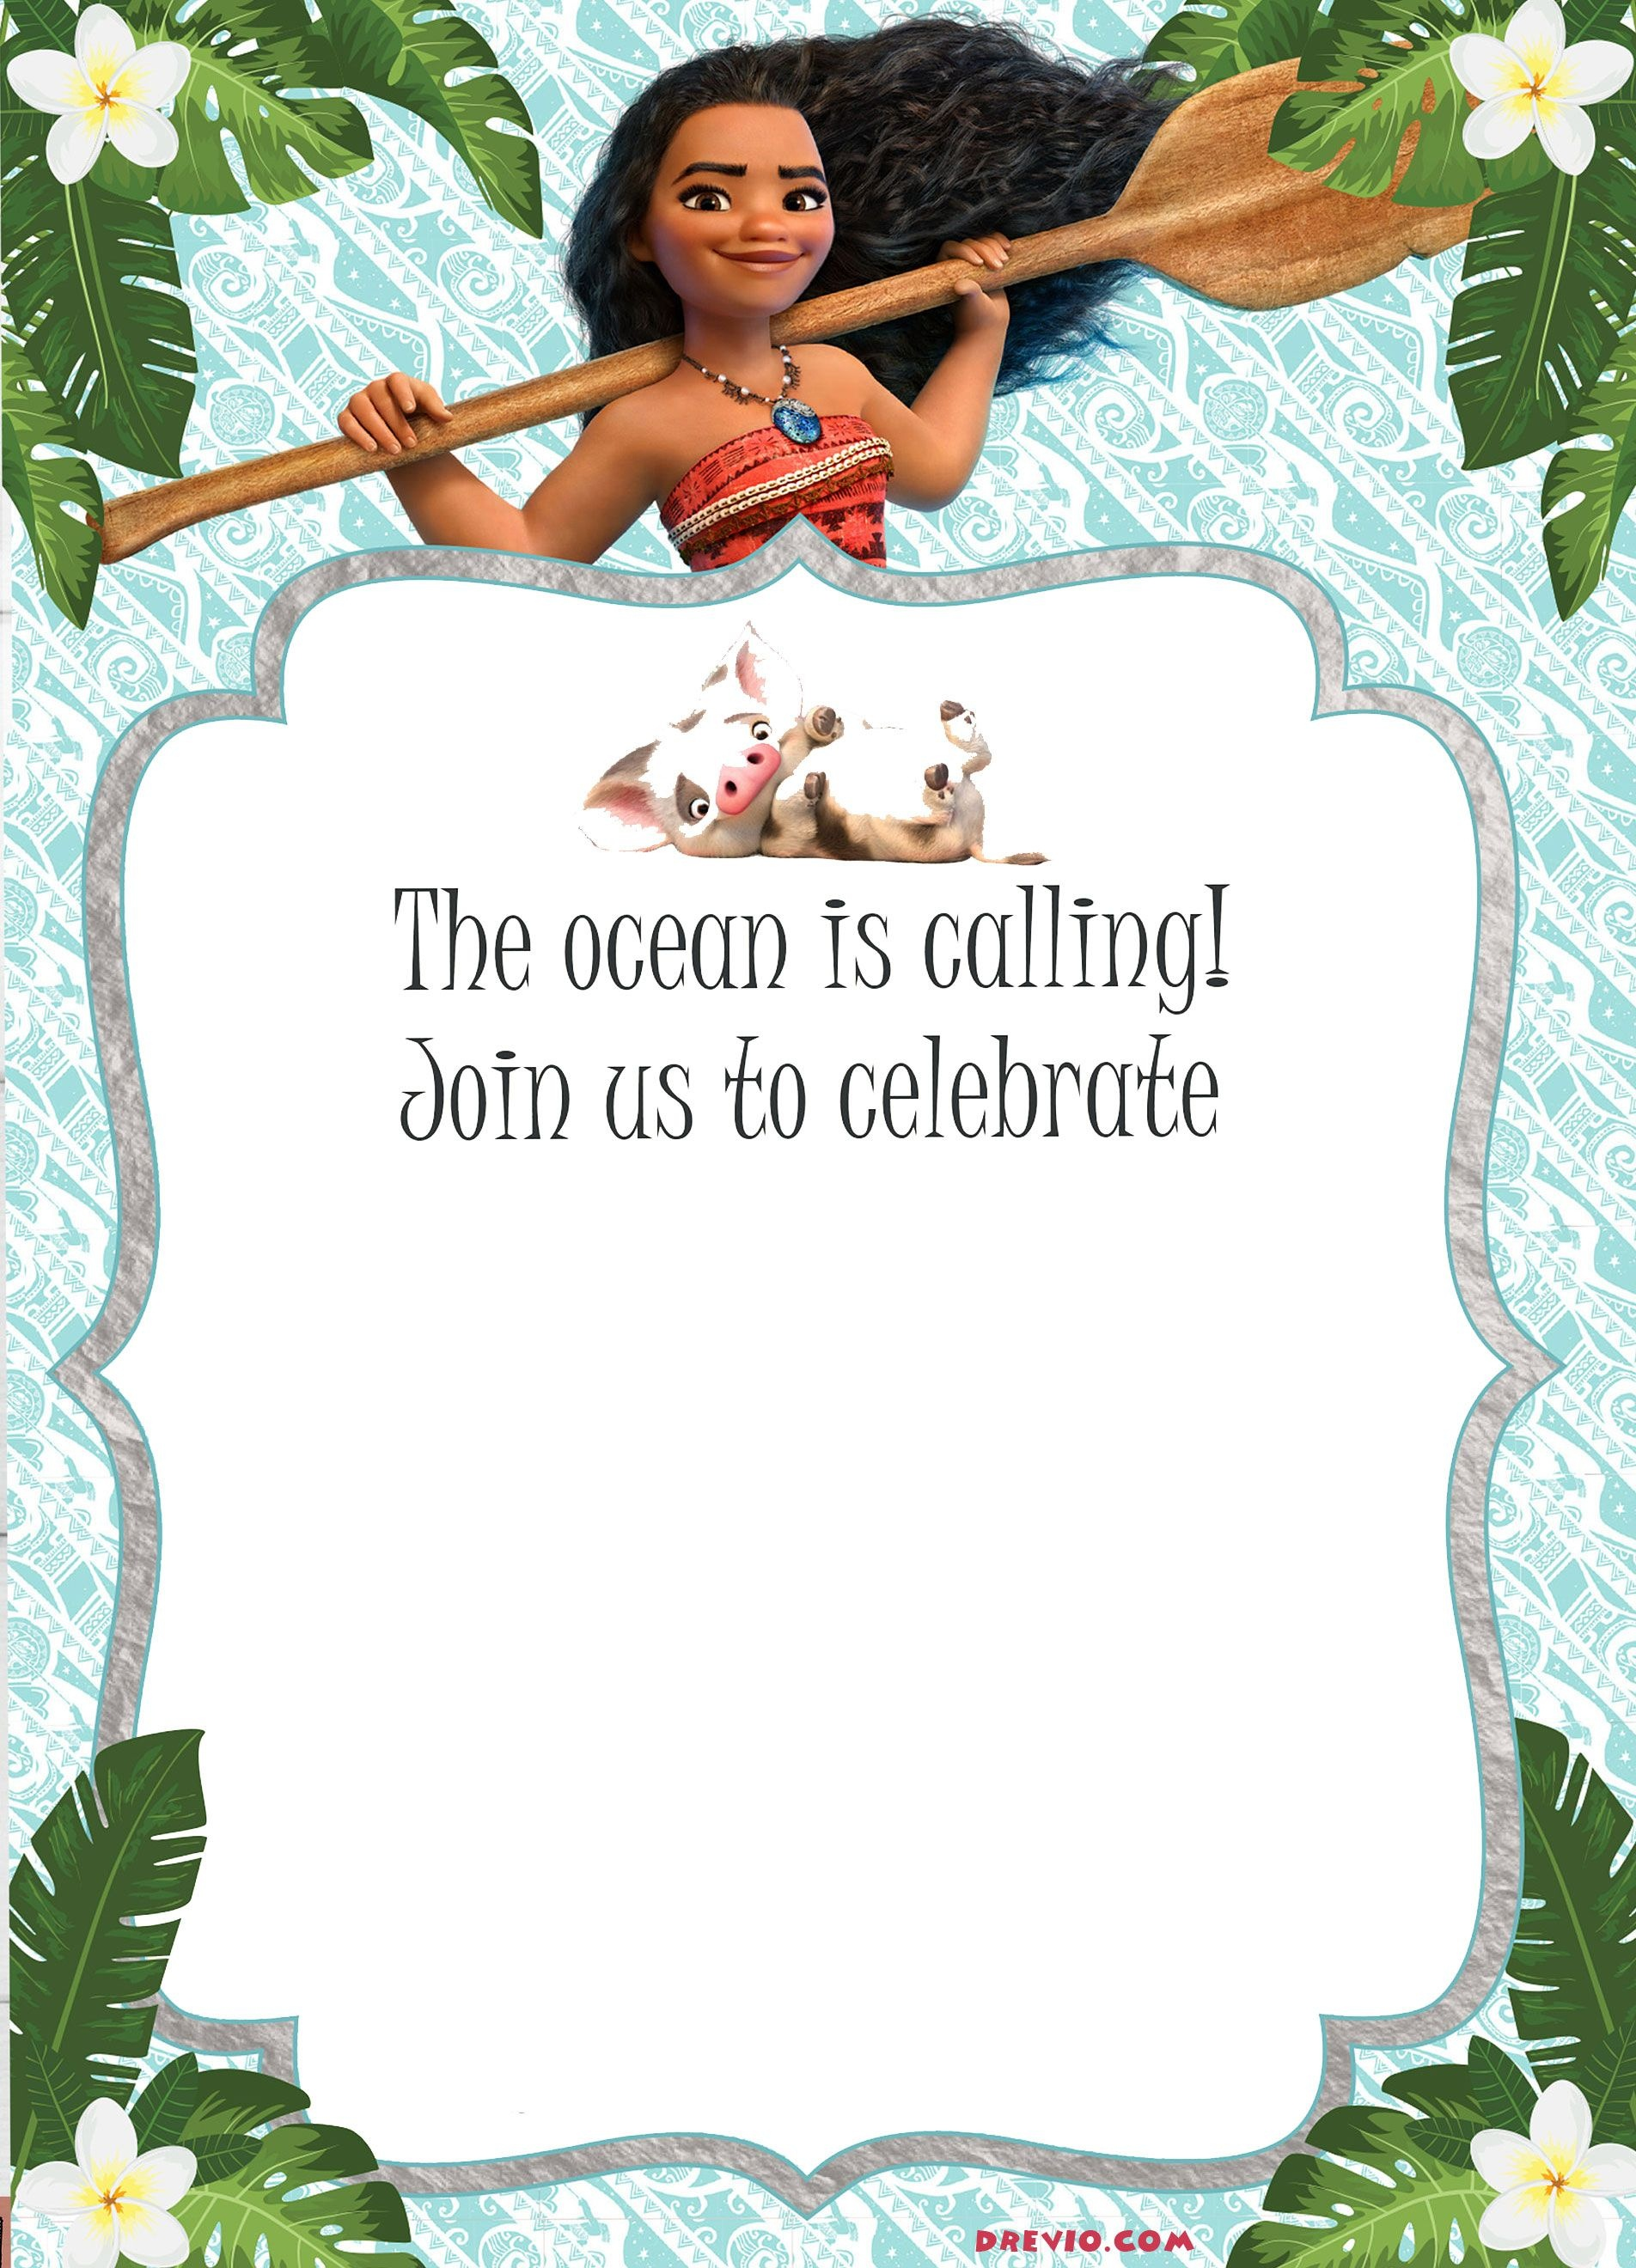 Free Moana Birthday Invitation Template | Moana / Luau Themed - Free Printable Moana Invitations